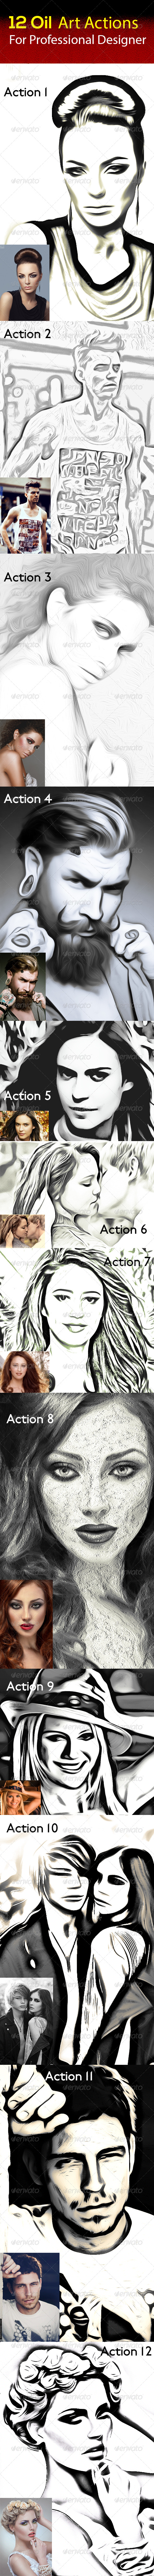 GraphicRiver 12 Oil Art Actions Vol 3 8028382